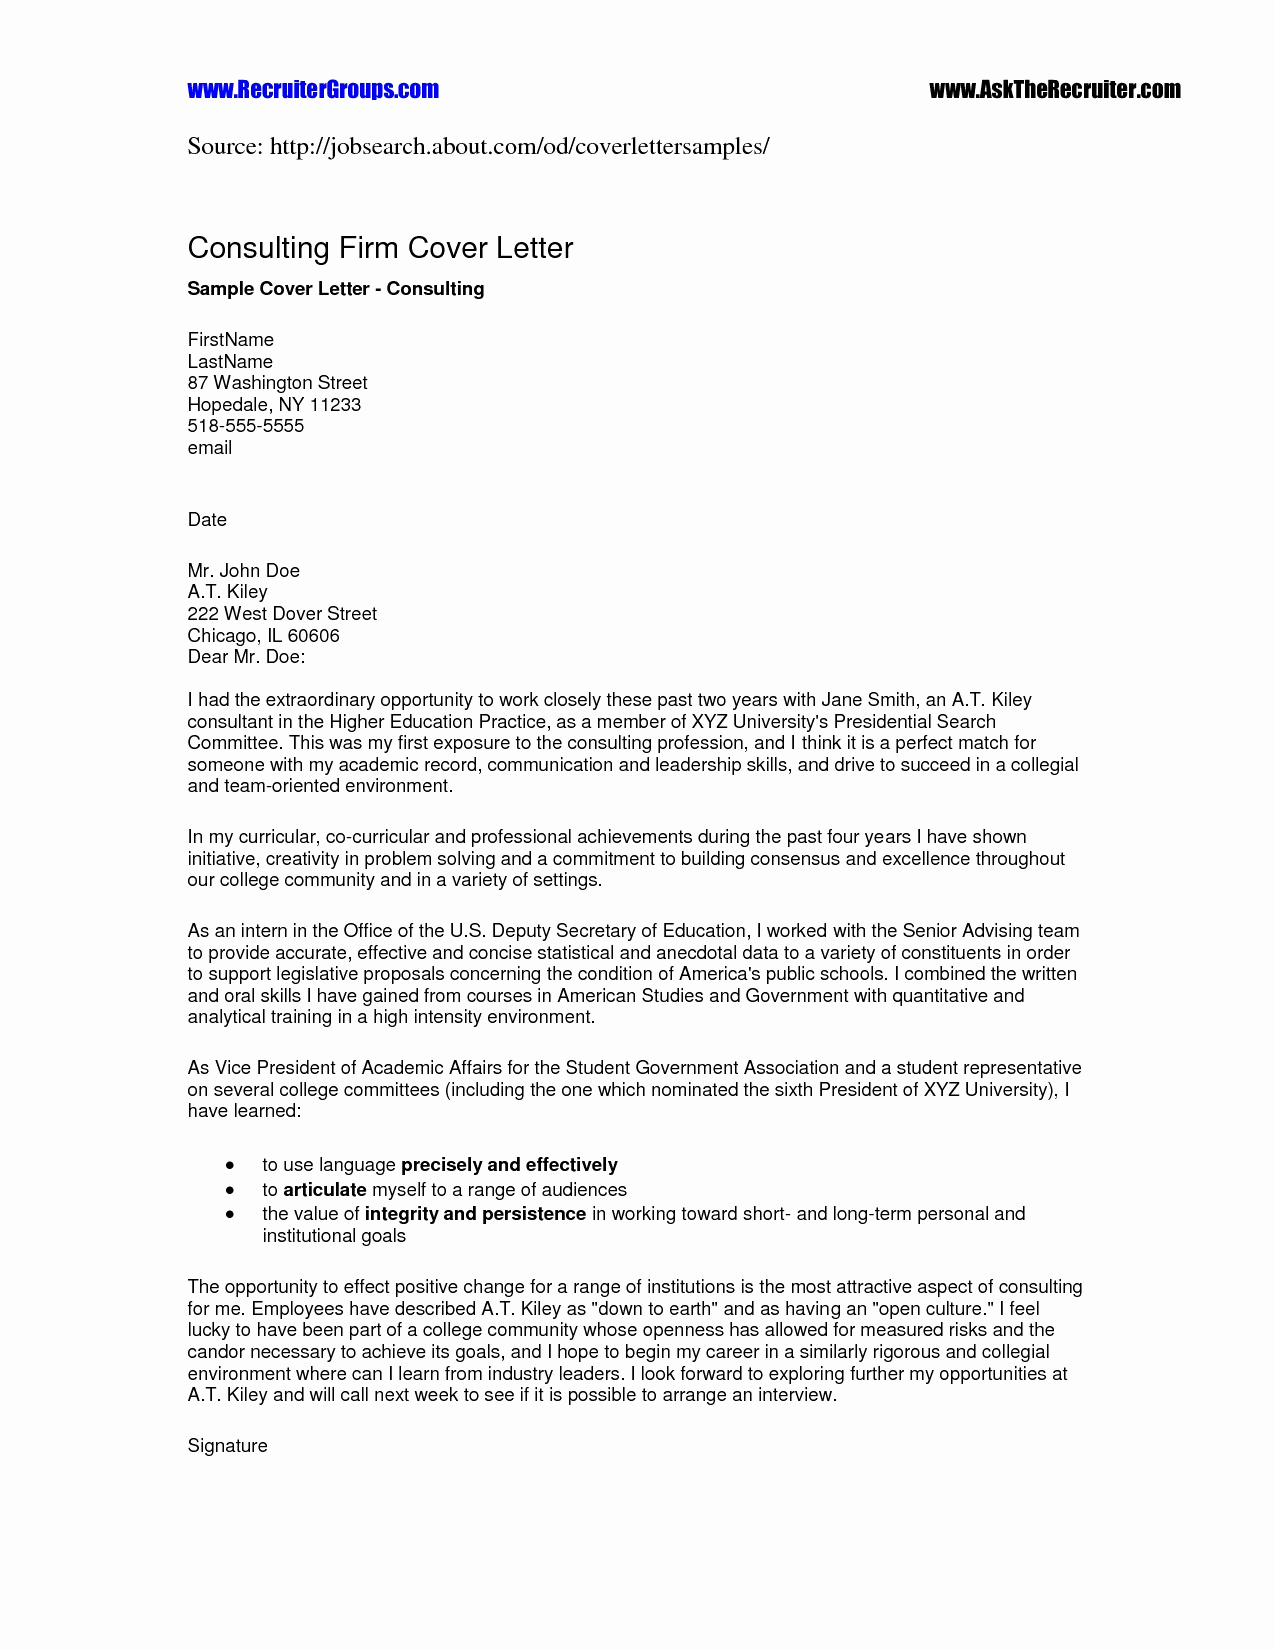 Letter Of Recommendation Letter Template - Personal Re Mendation Letter Template Awesome Cover Letter Sample